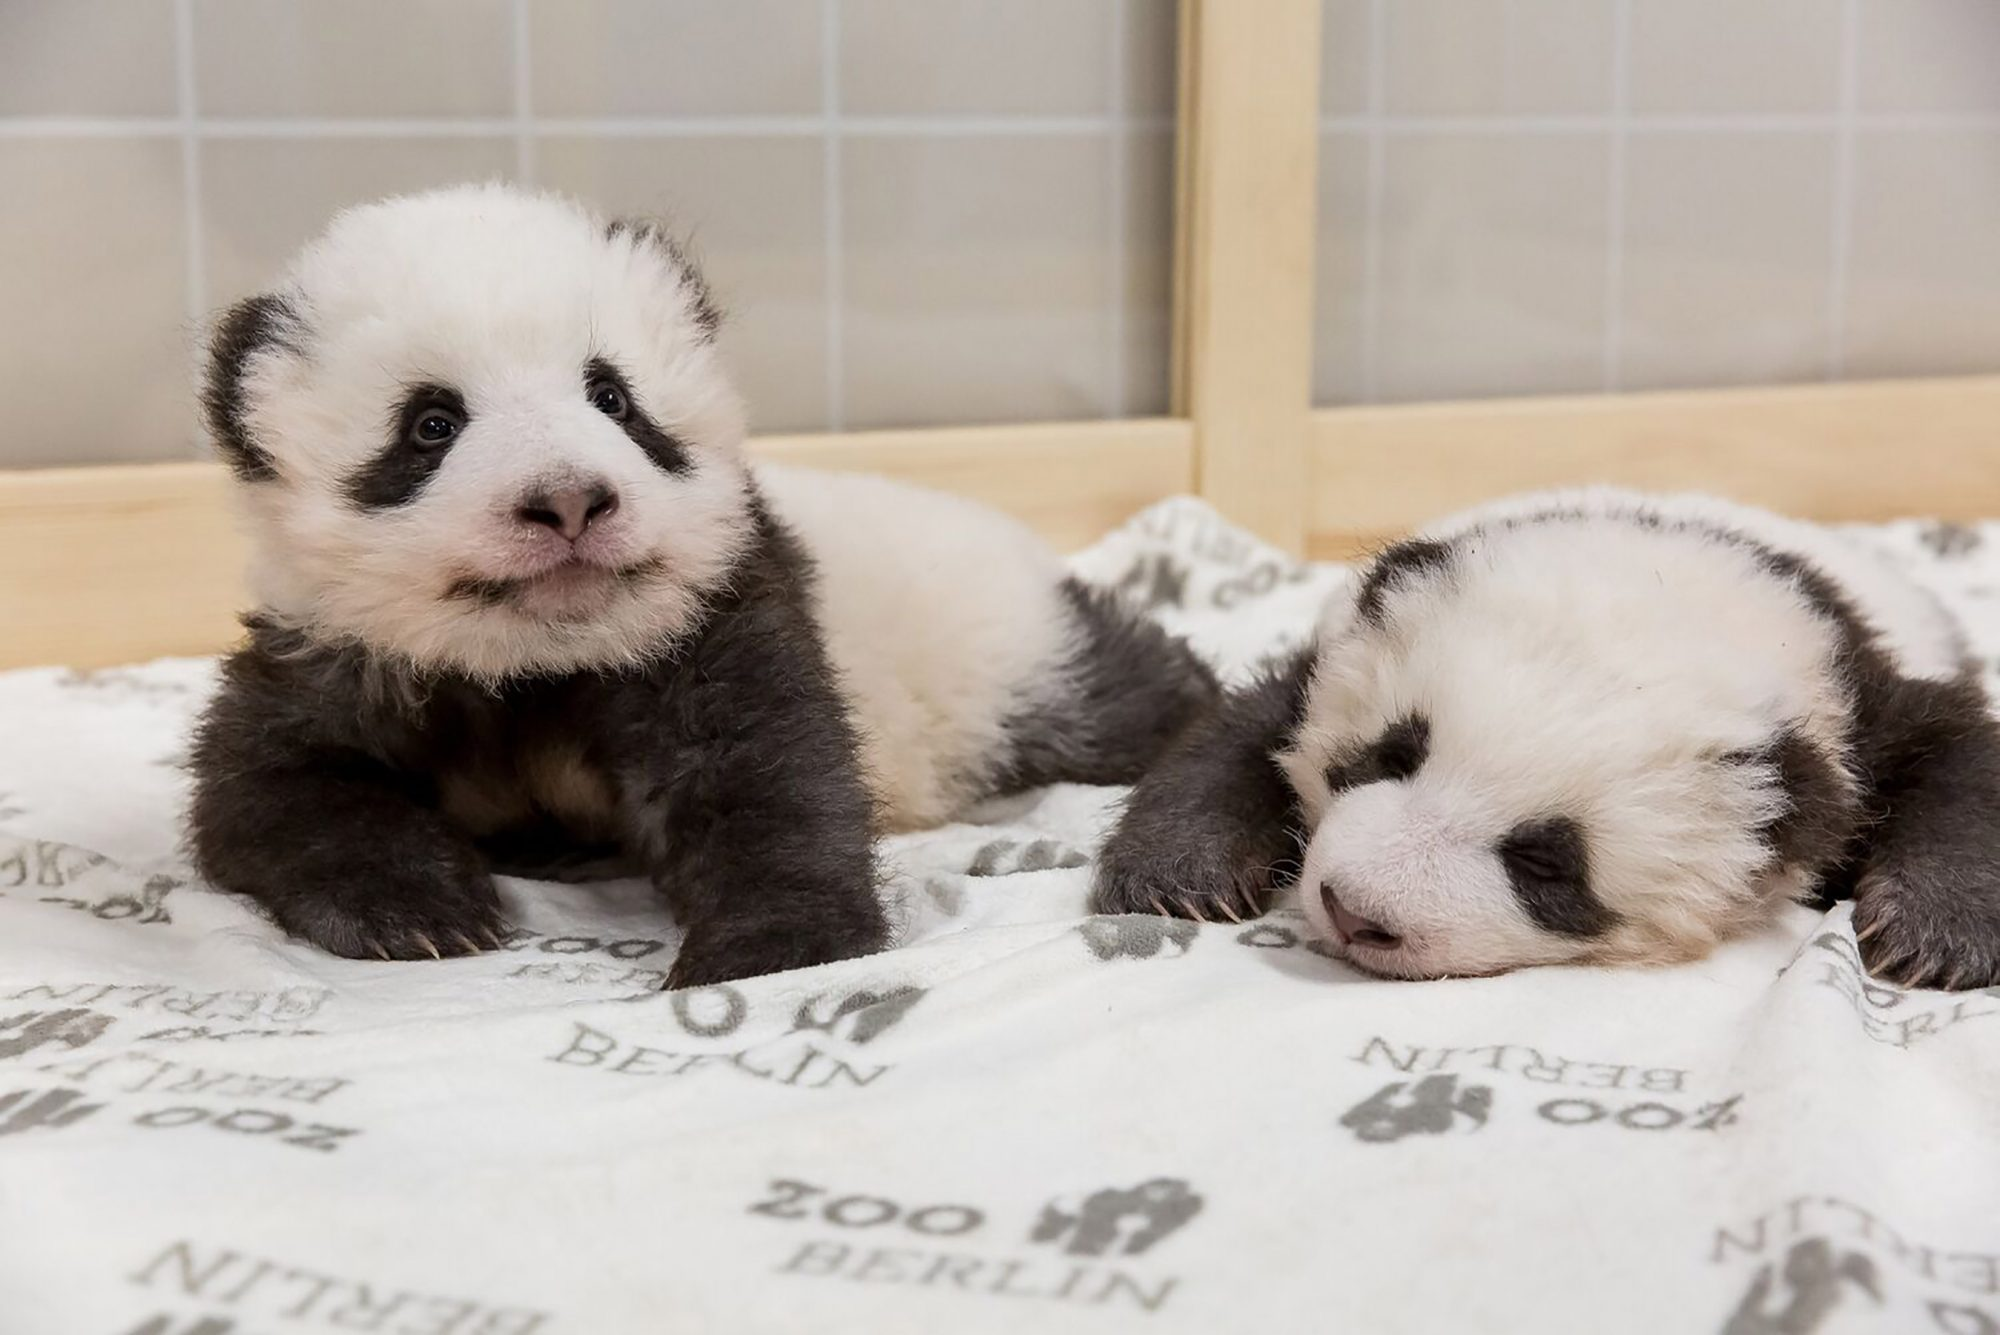 Berlin Zoo Releases New Photos Of Baby Panda Twins People Com